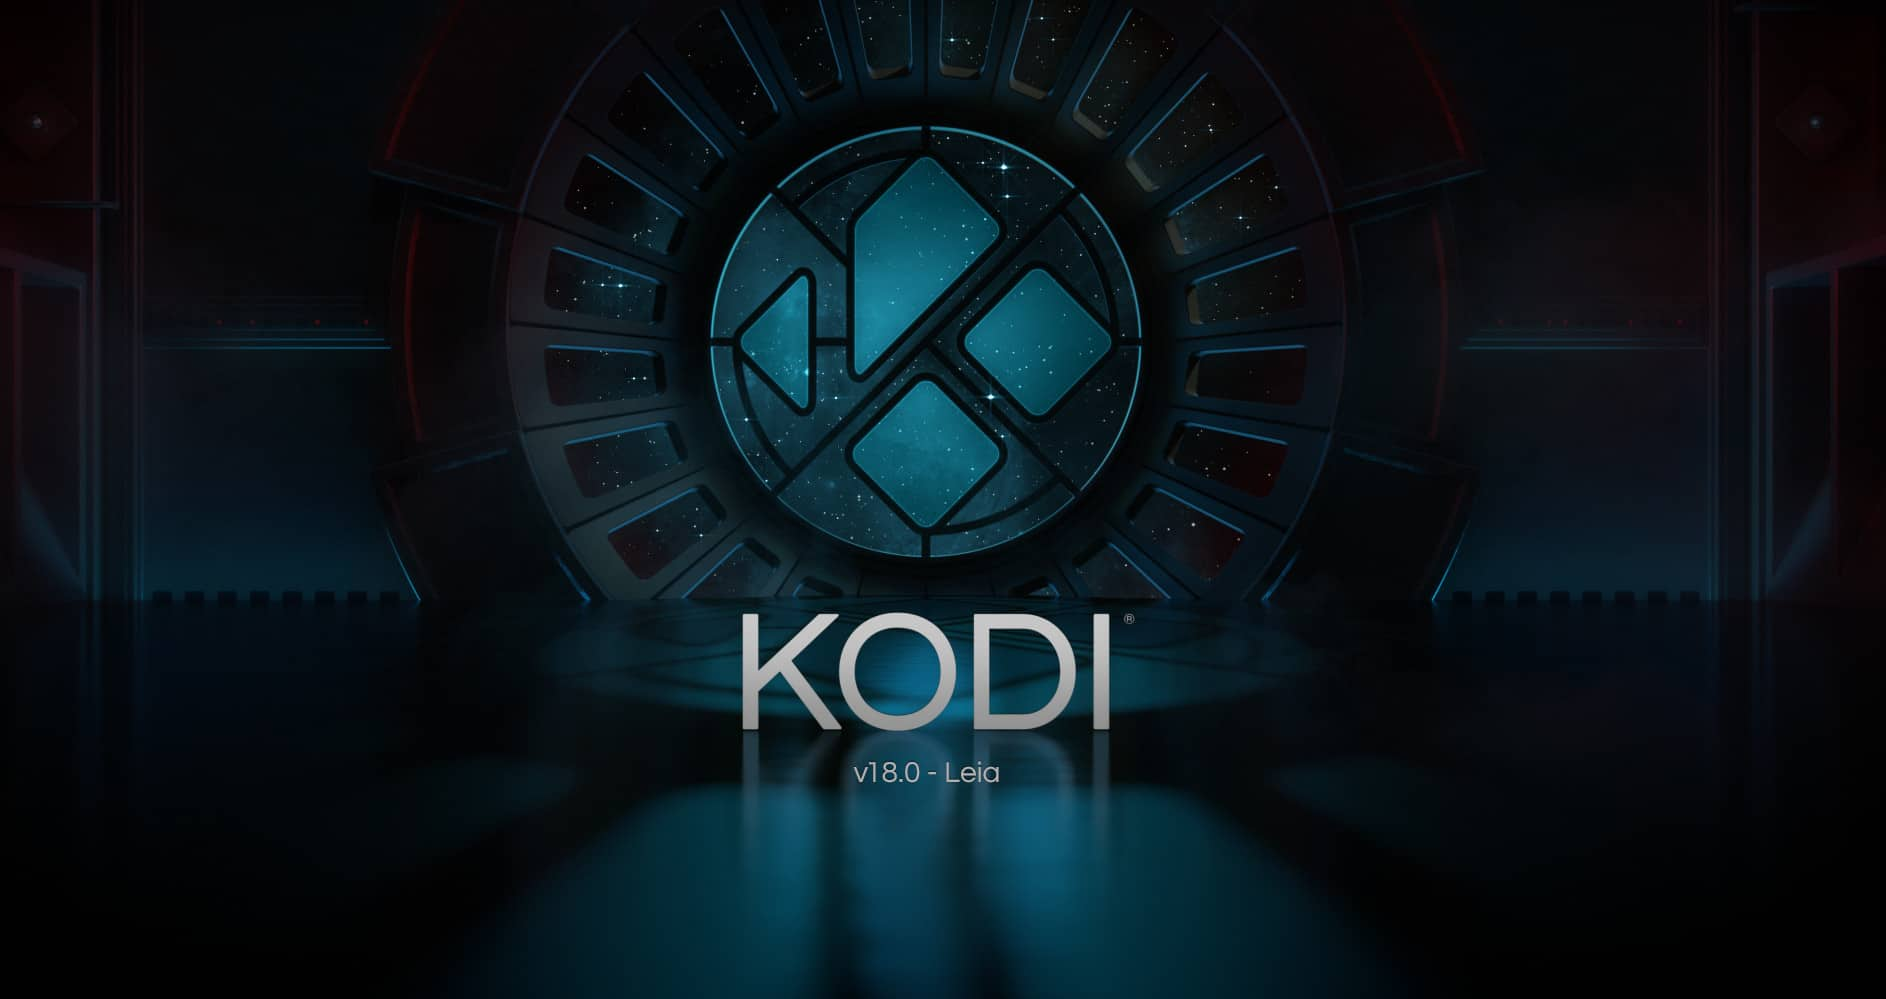 kodi download for windows 10 32 bit